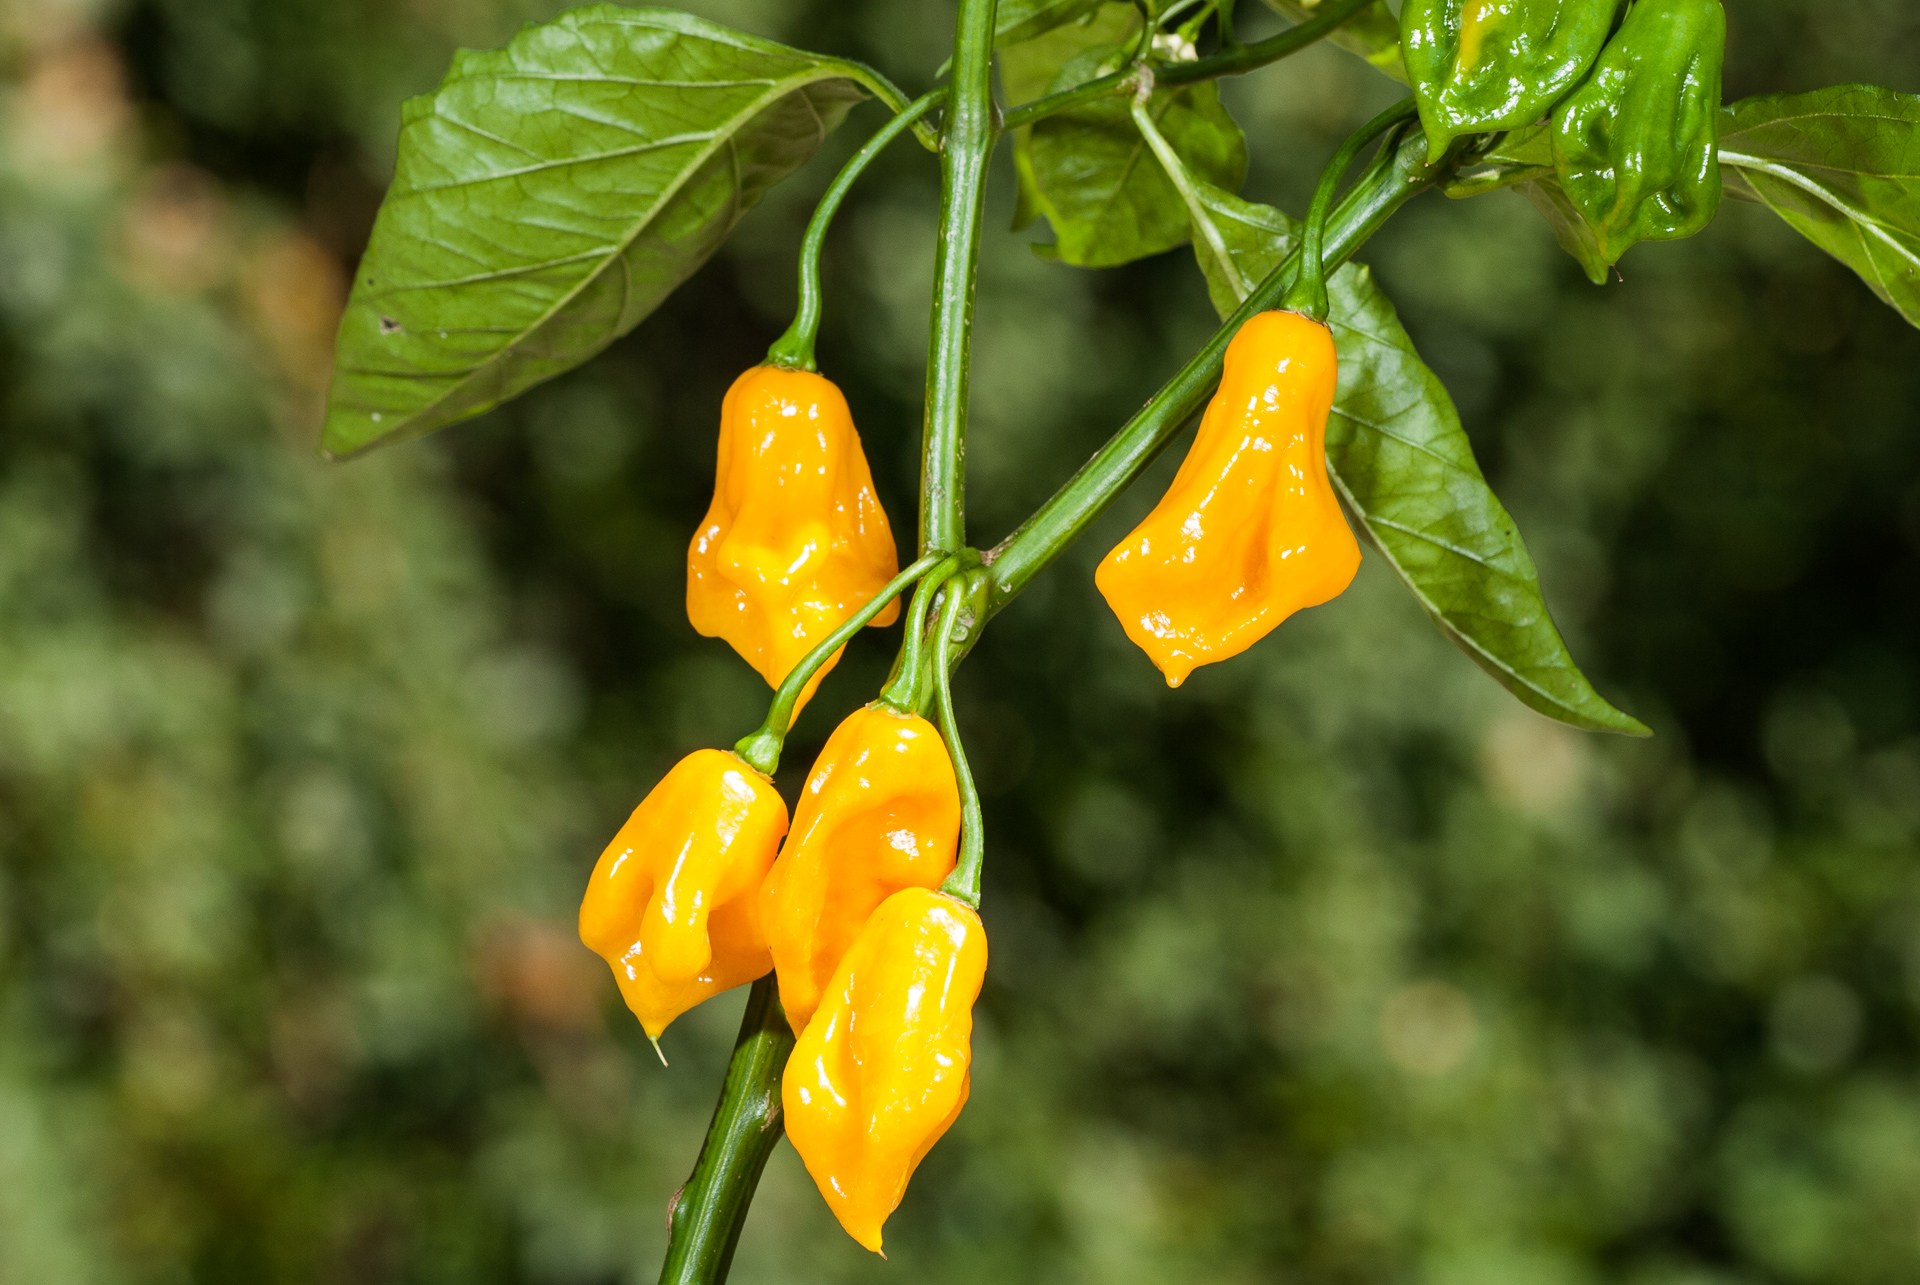 VI012519 - Capsicum annuum - Chilisorte